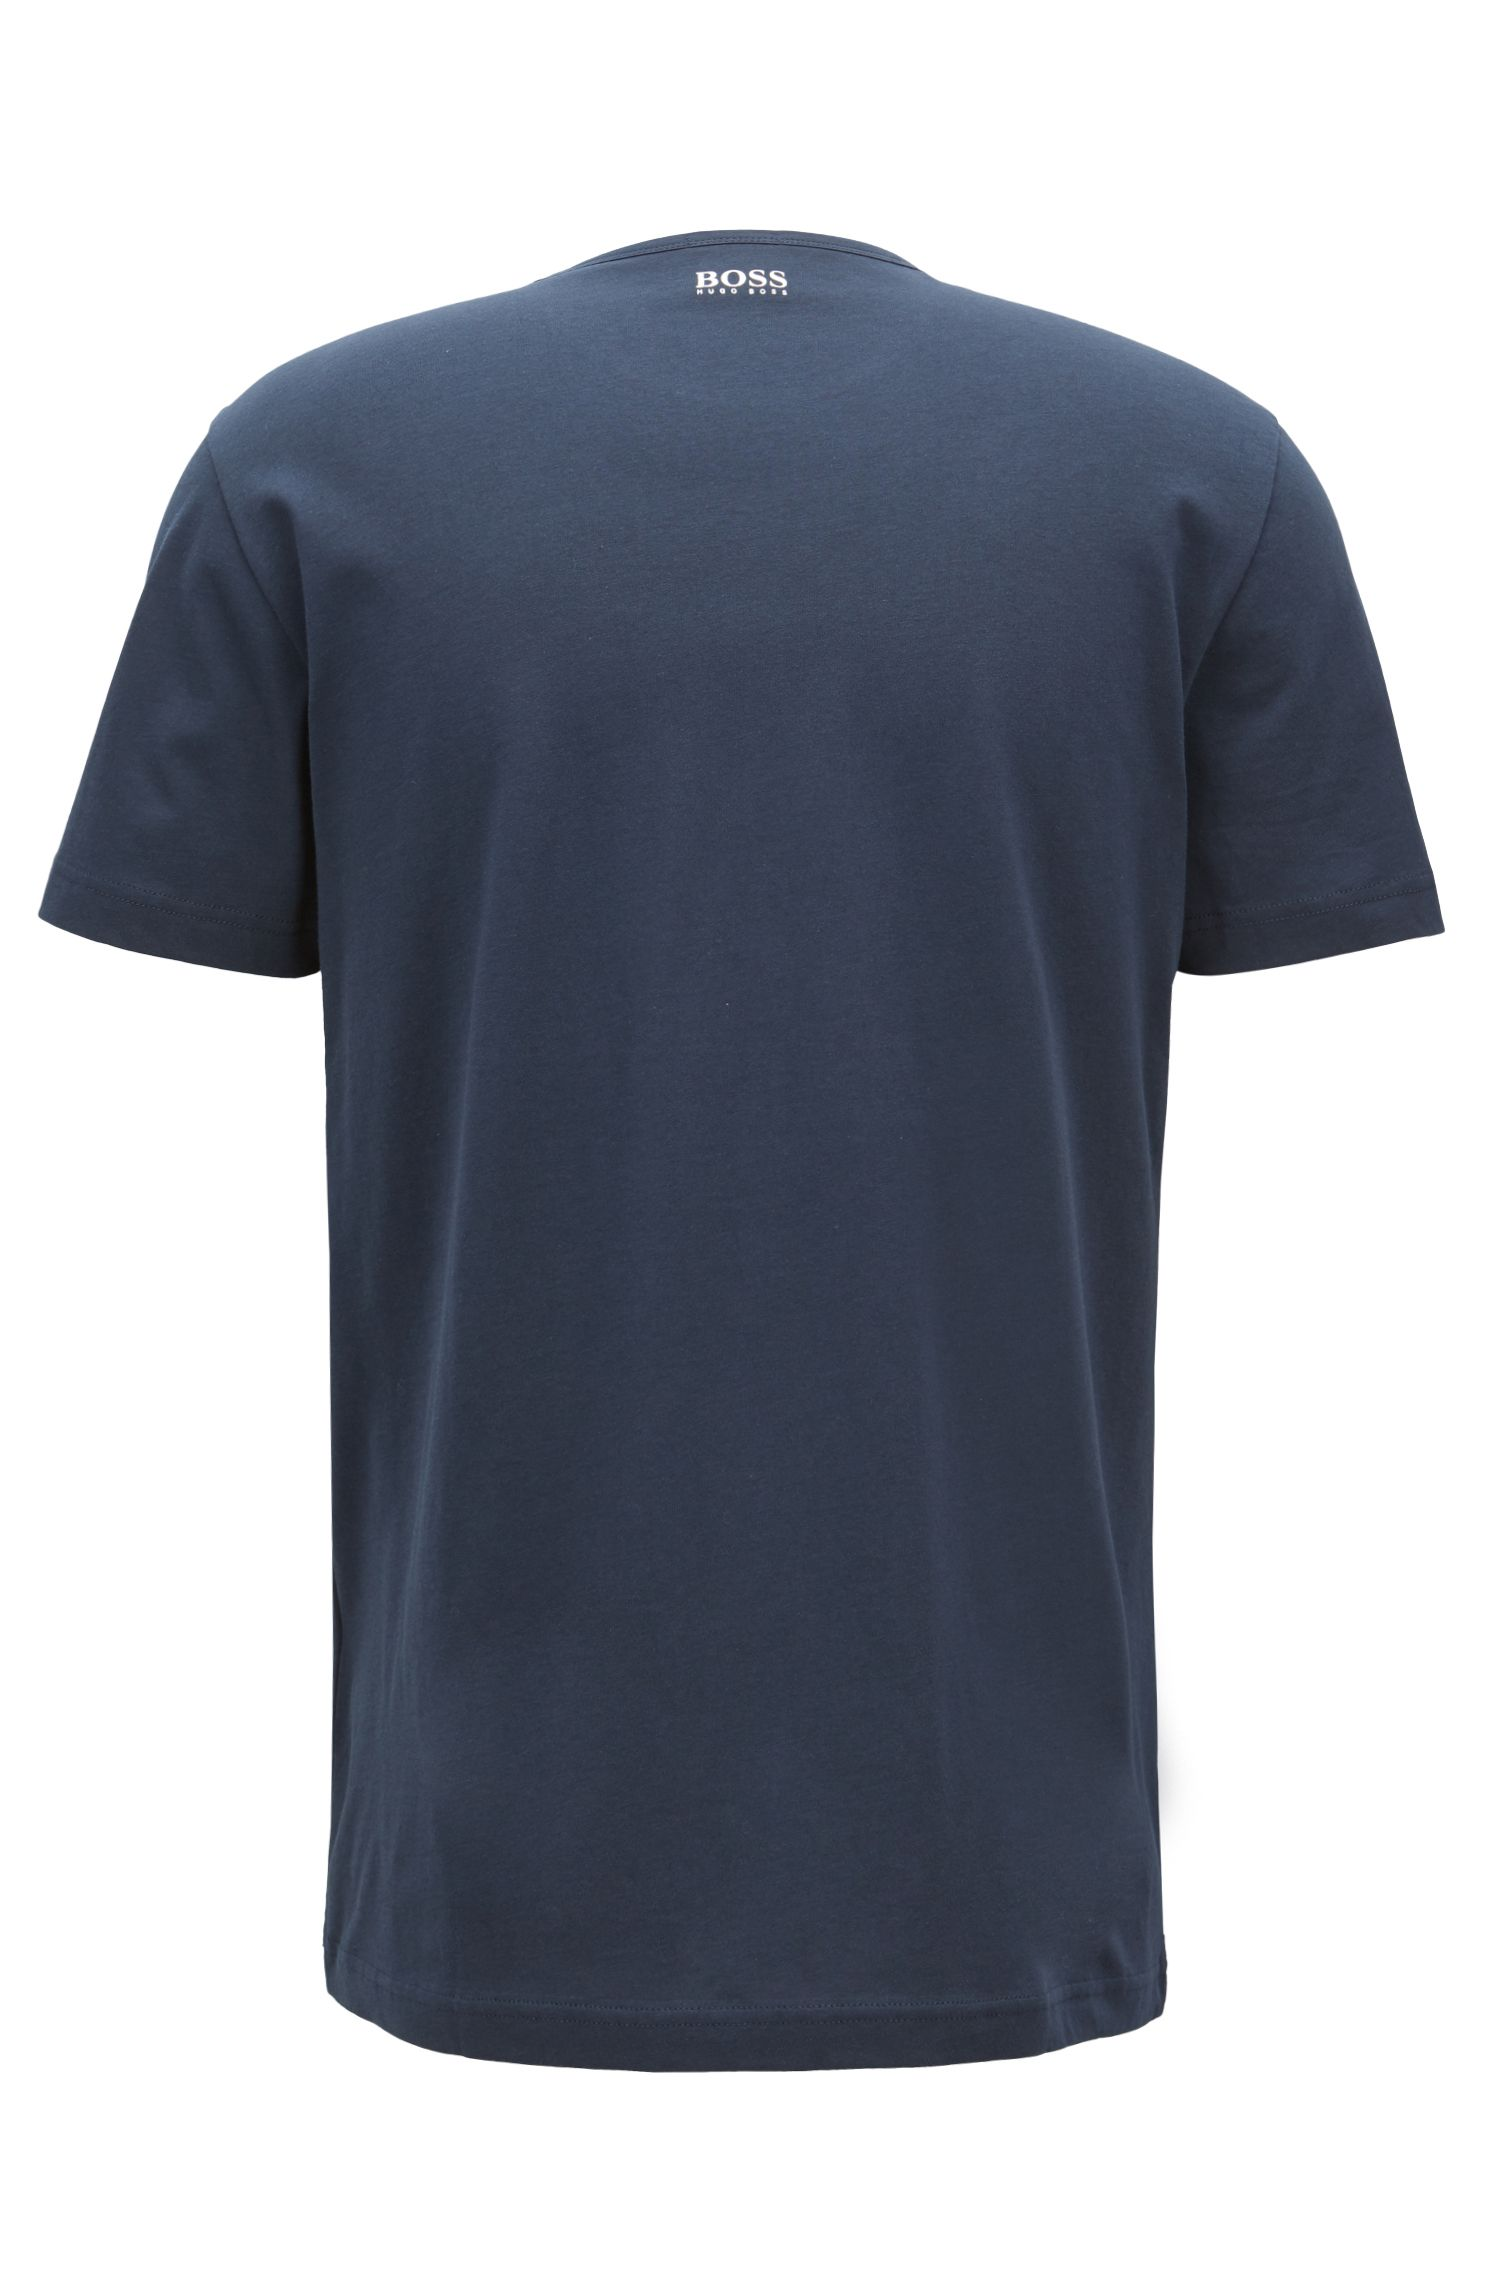 Short-sleeved T-shirt in cotton with printed logo artwork, Dark Blue